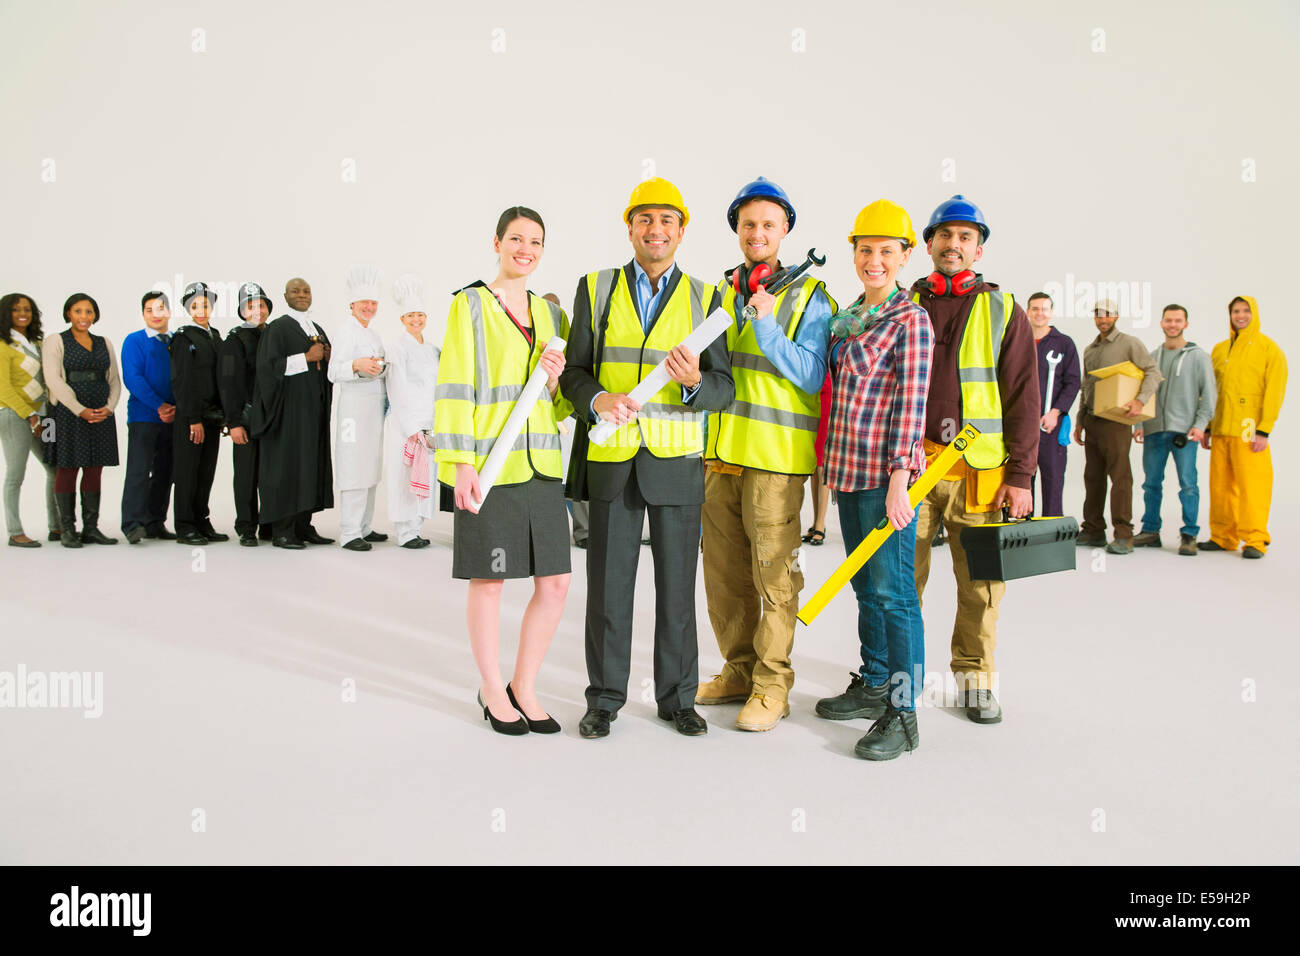 Portrait of construction workers Photo Stock